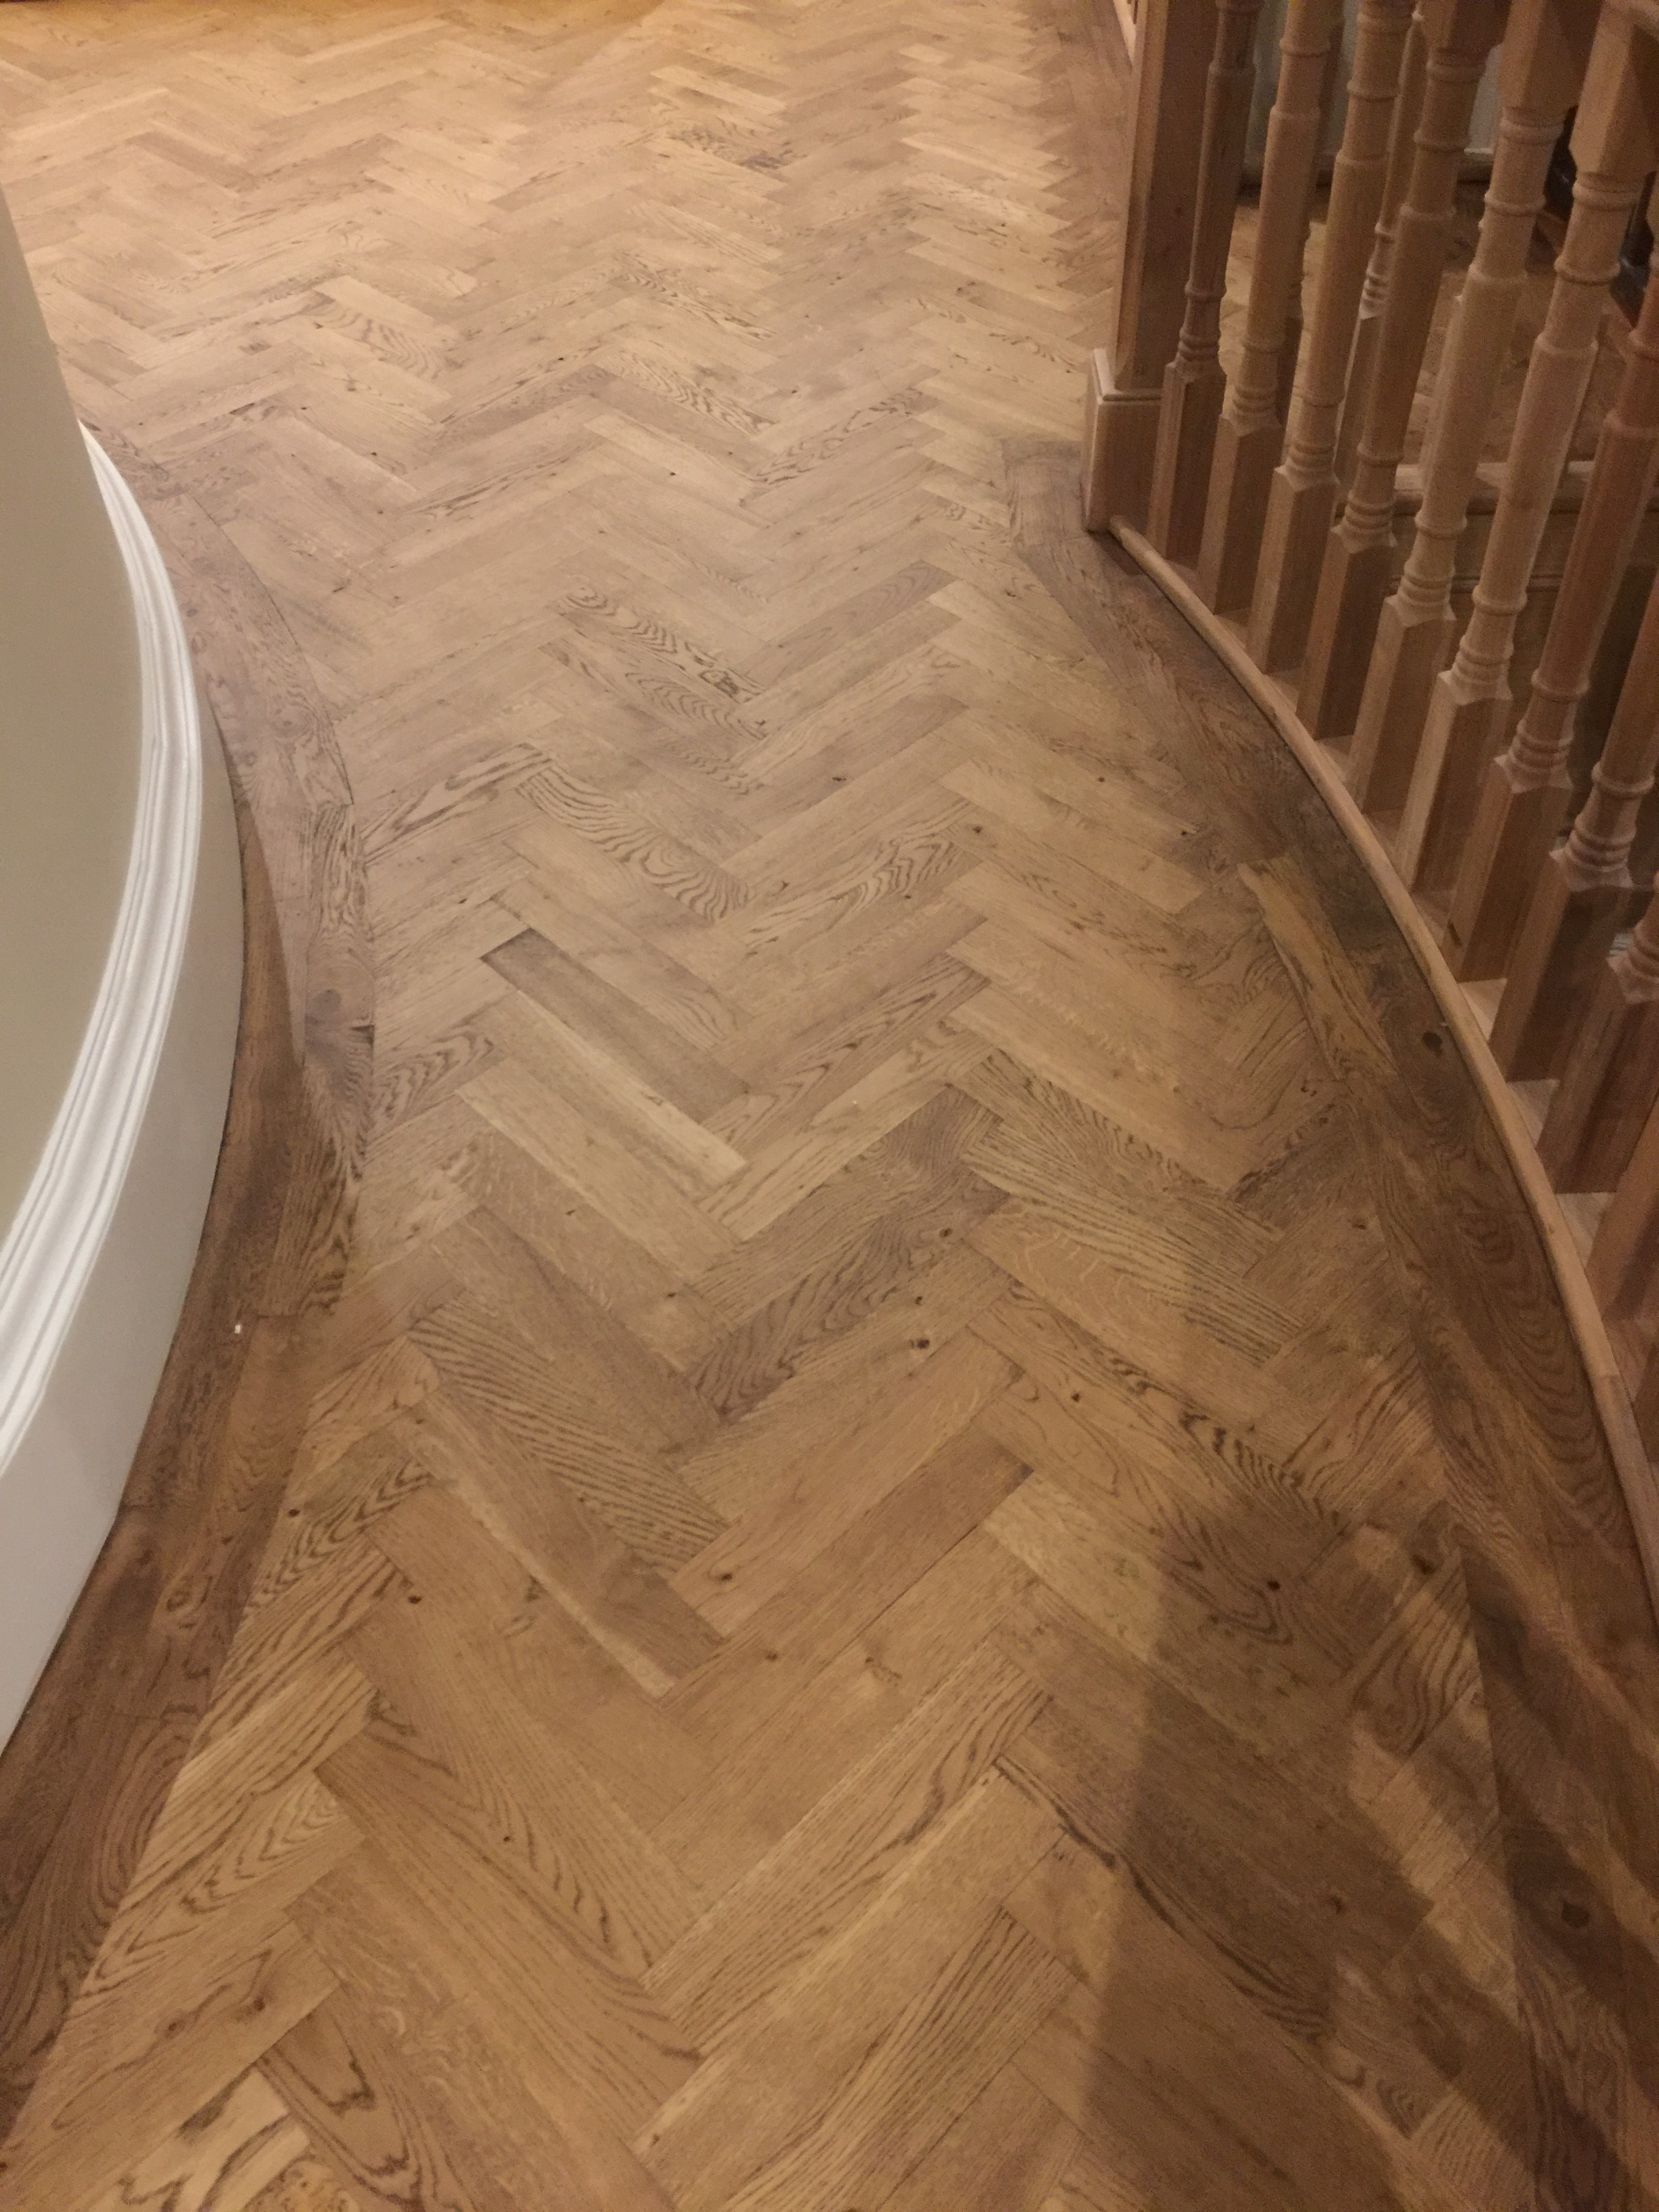 mixed floor in and products estate width floors finished parquet herringbone flooring engineered oak european hand reclaimed large pattern country